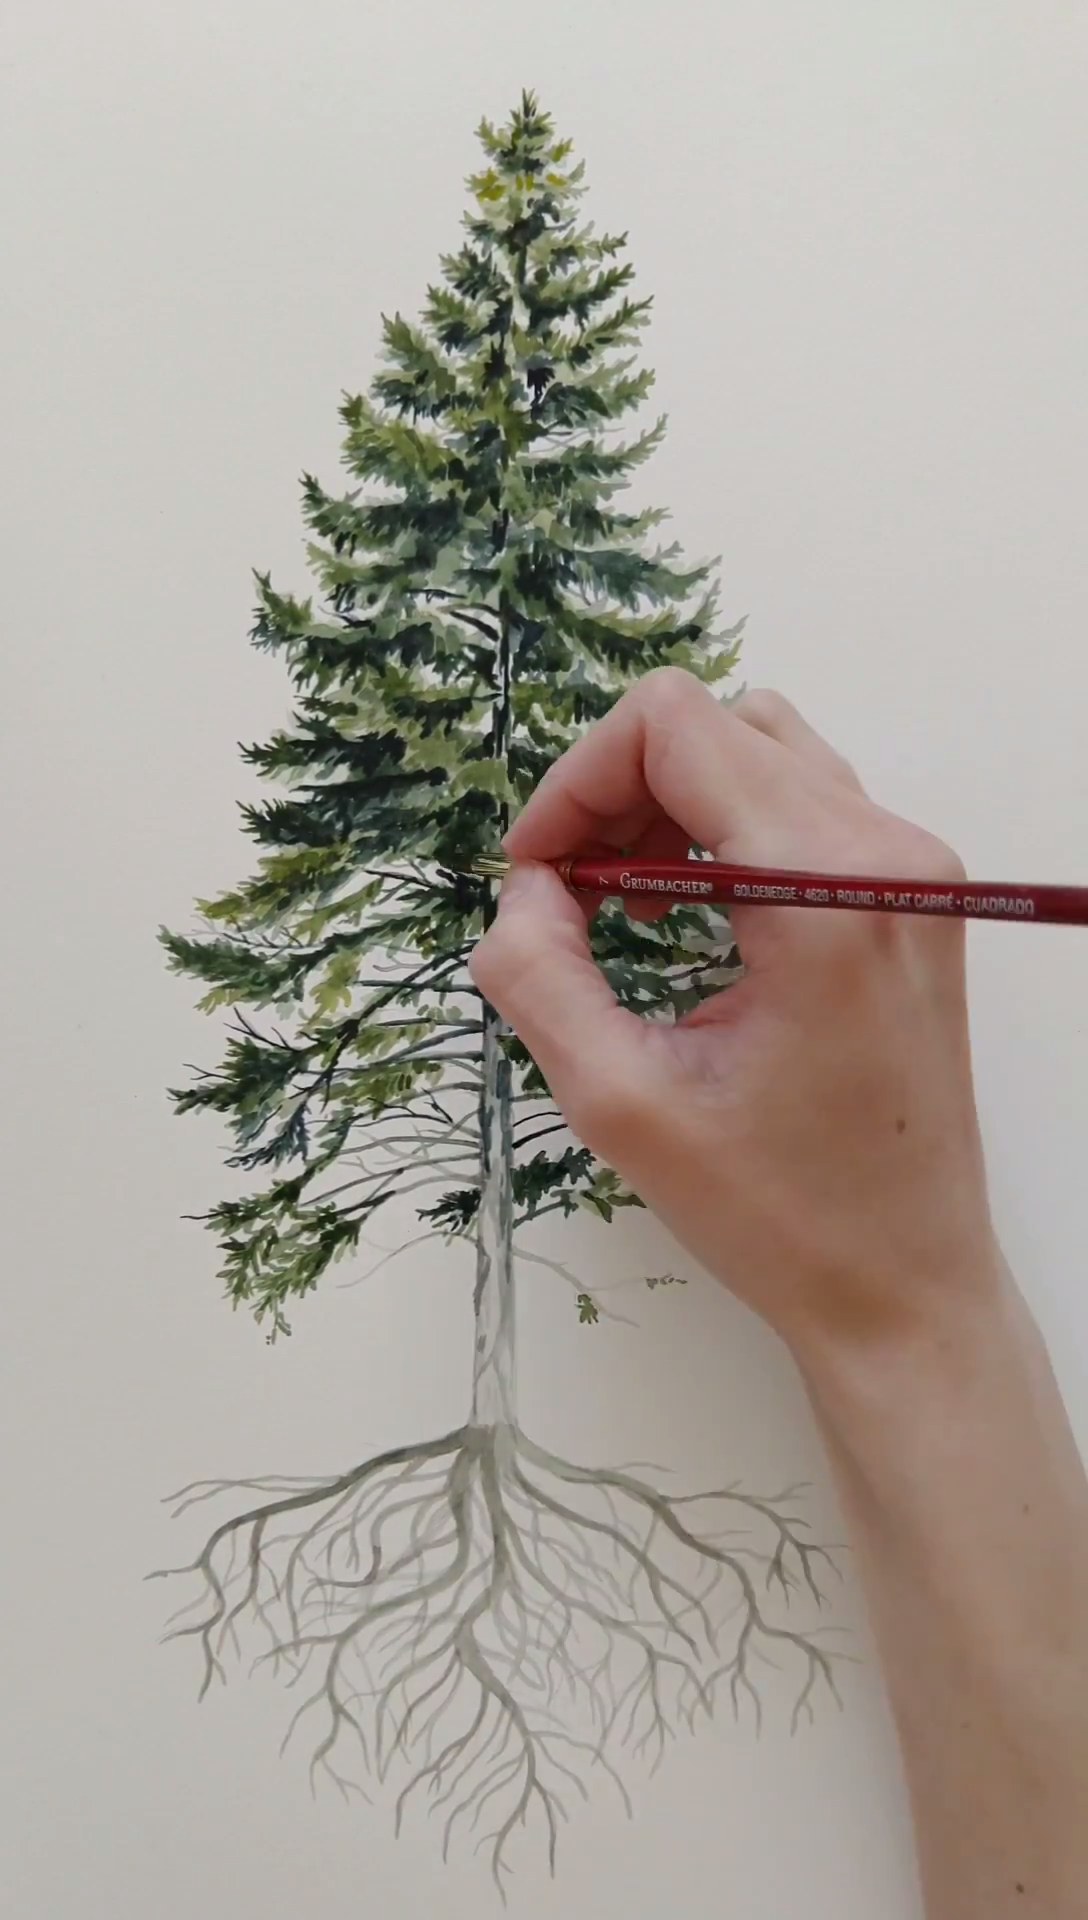 Watercolor Pine Tree Process video. Full time lapse of the artwork. Here is the process showing how